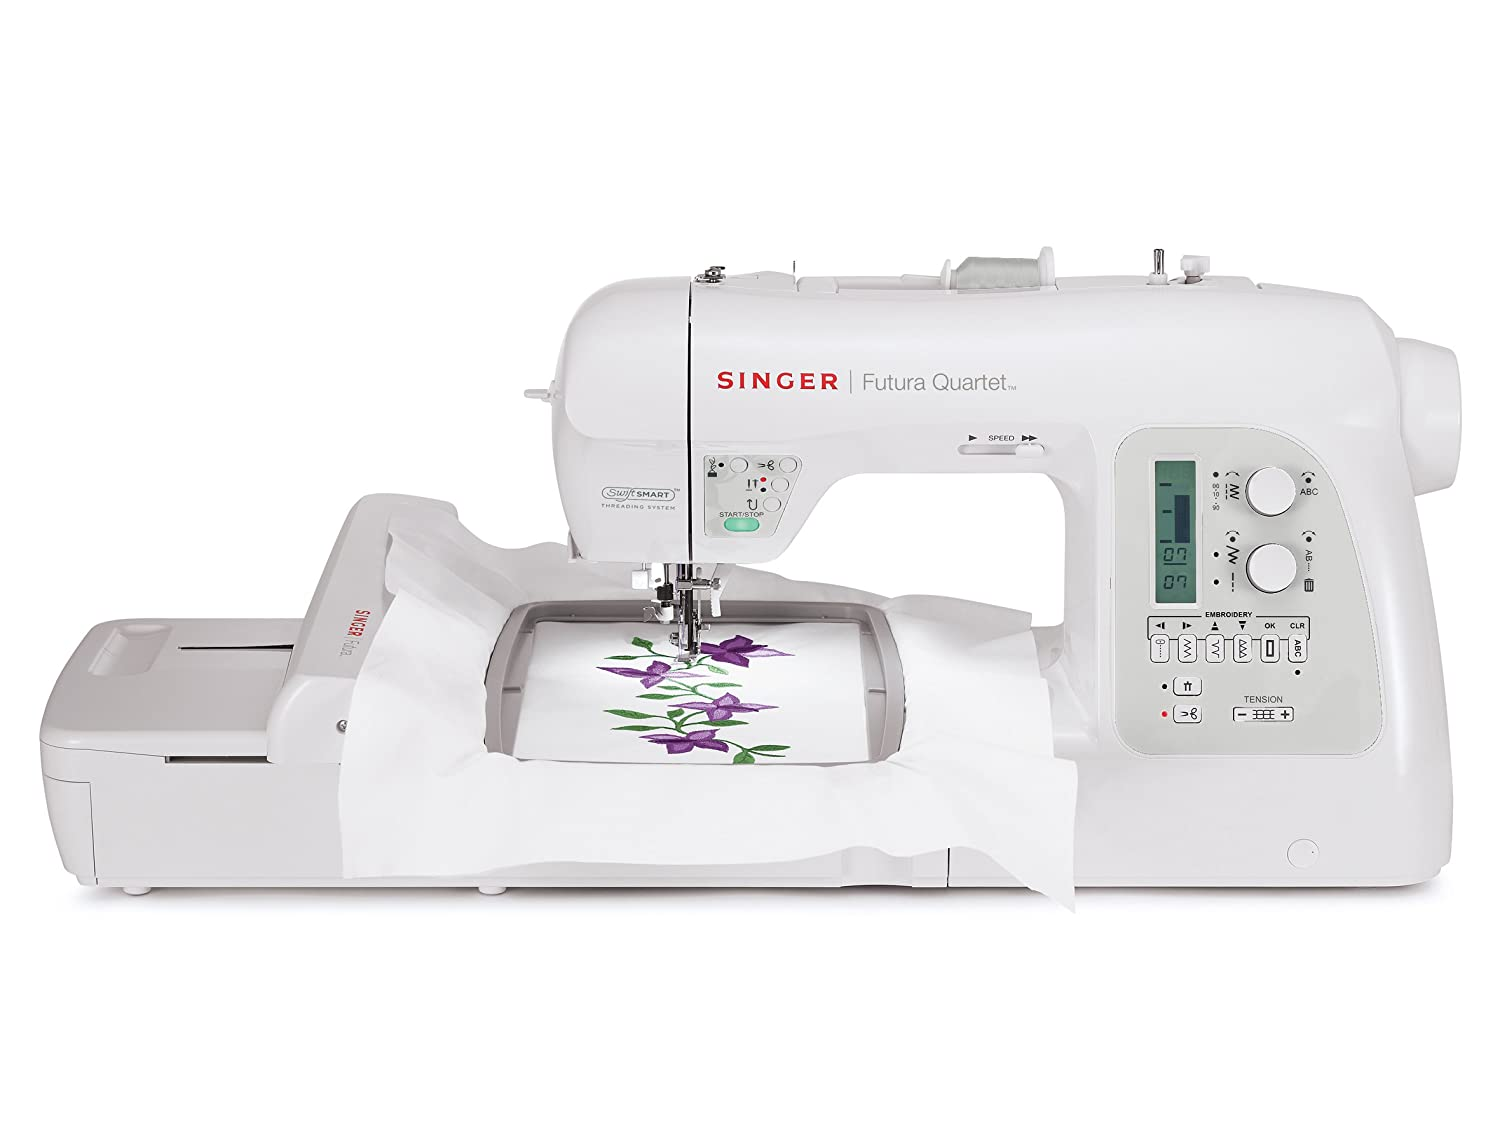 Singer 4-in-1 Futura Quartet Sewing, Embroidery, Quilting and Serging Machin